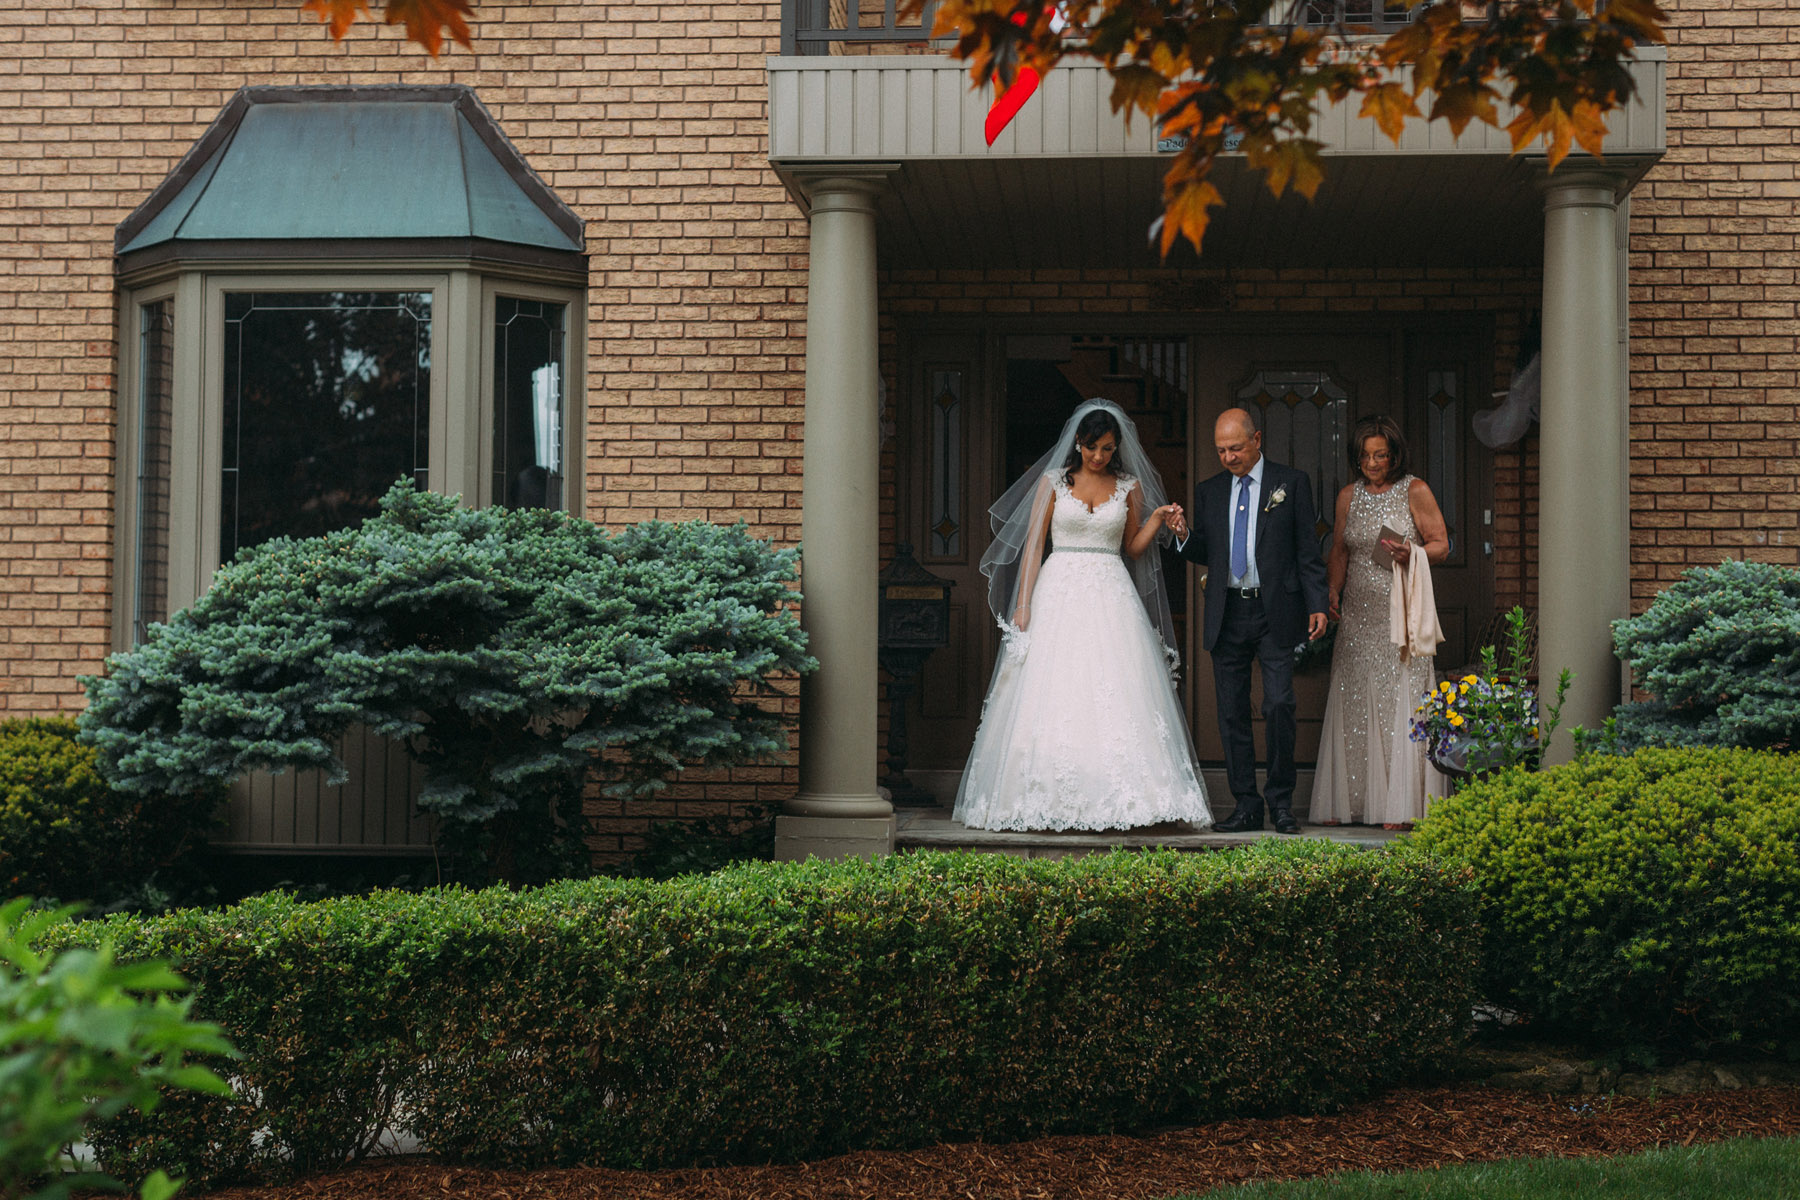 Harding-Waterfront-Estate-Mississauga-wedding-photography-by-Sam-Wong-of-Artanis-Collective_06.jpg